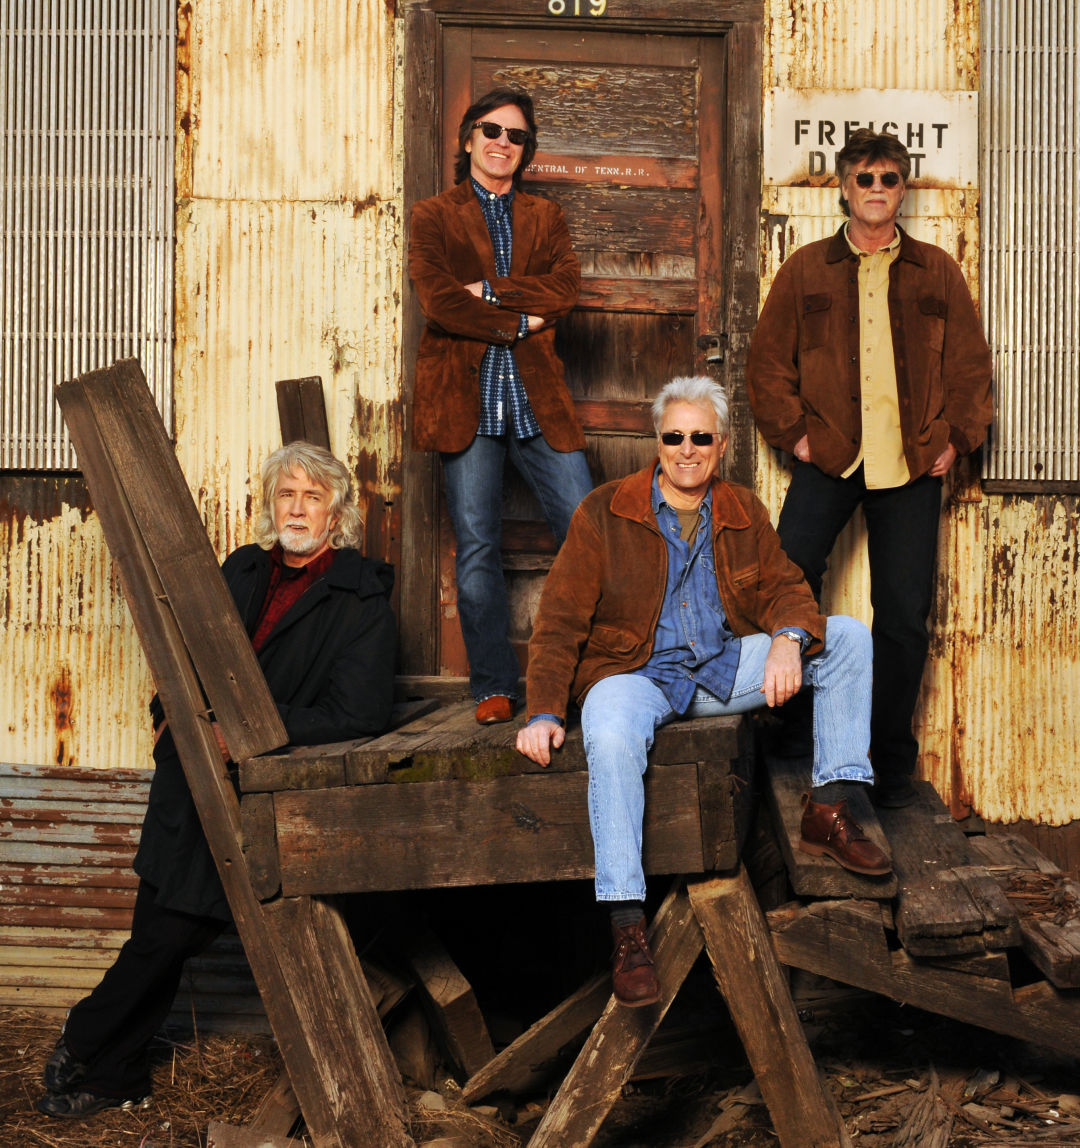 Nitty gritty dirt band degxmt